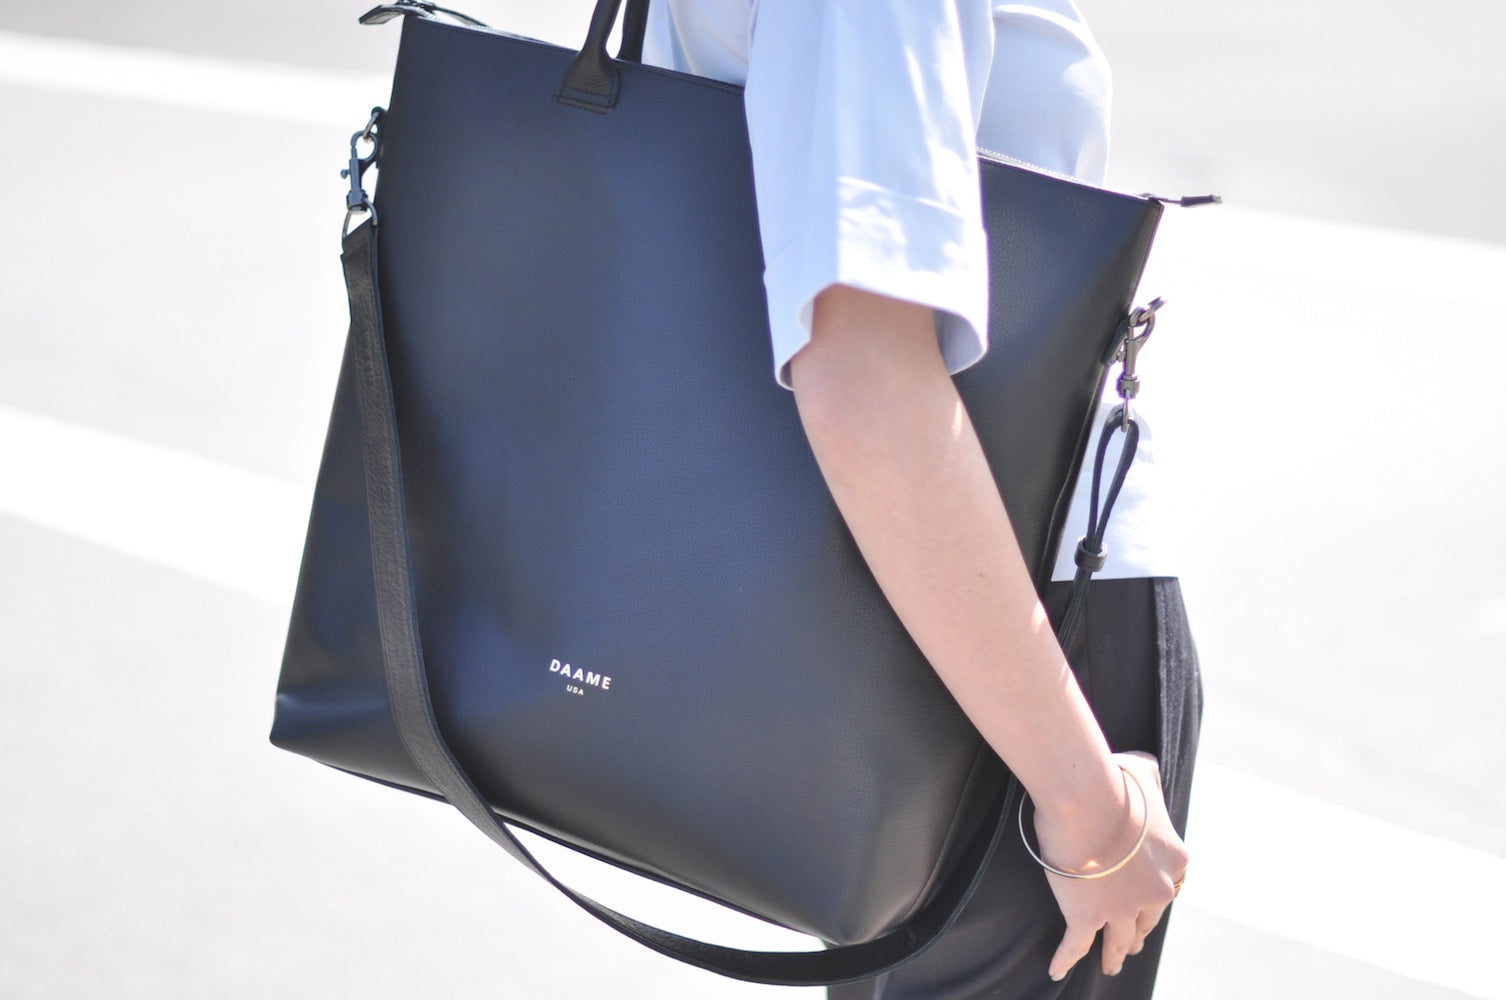 close-up of Daame leather laptop tote